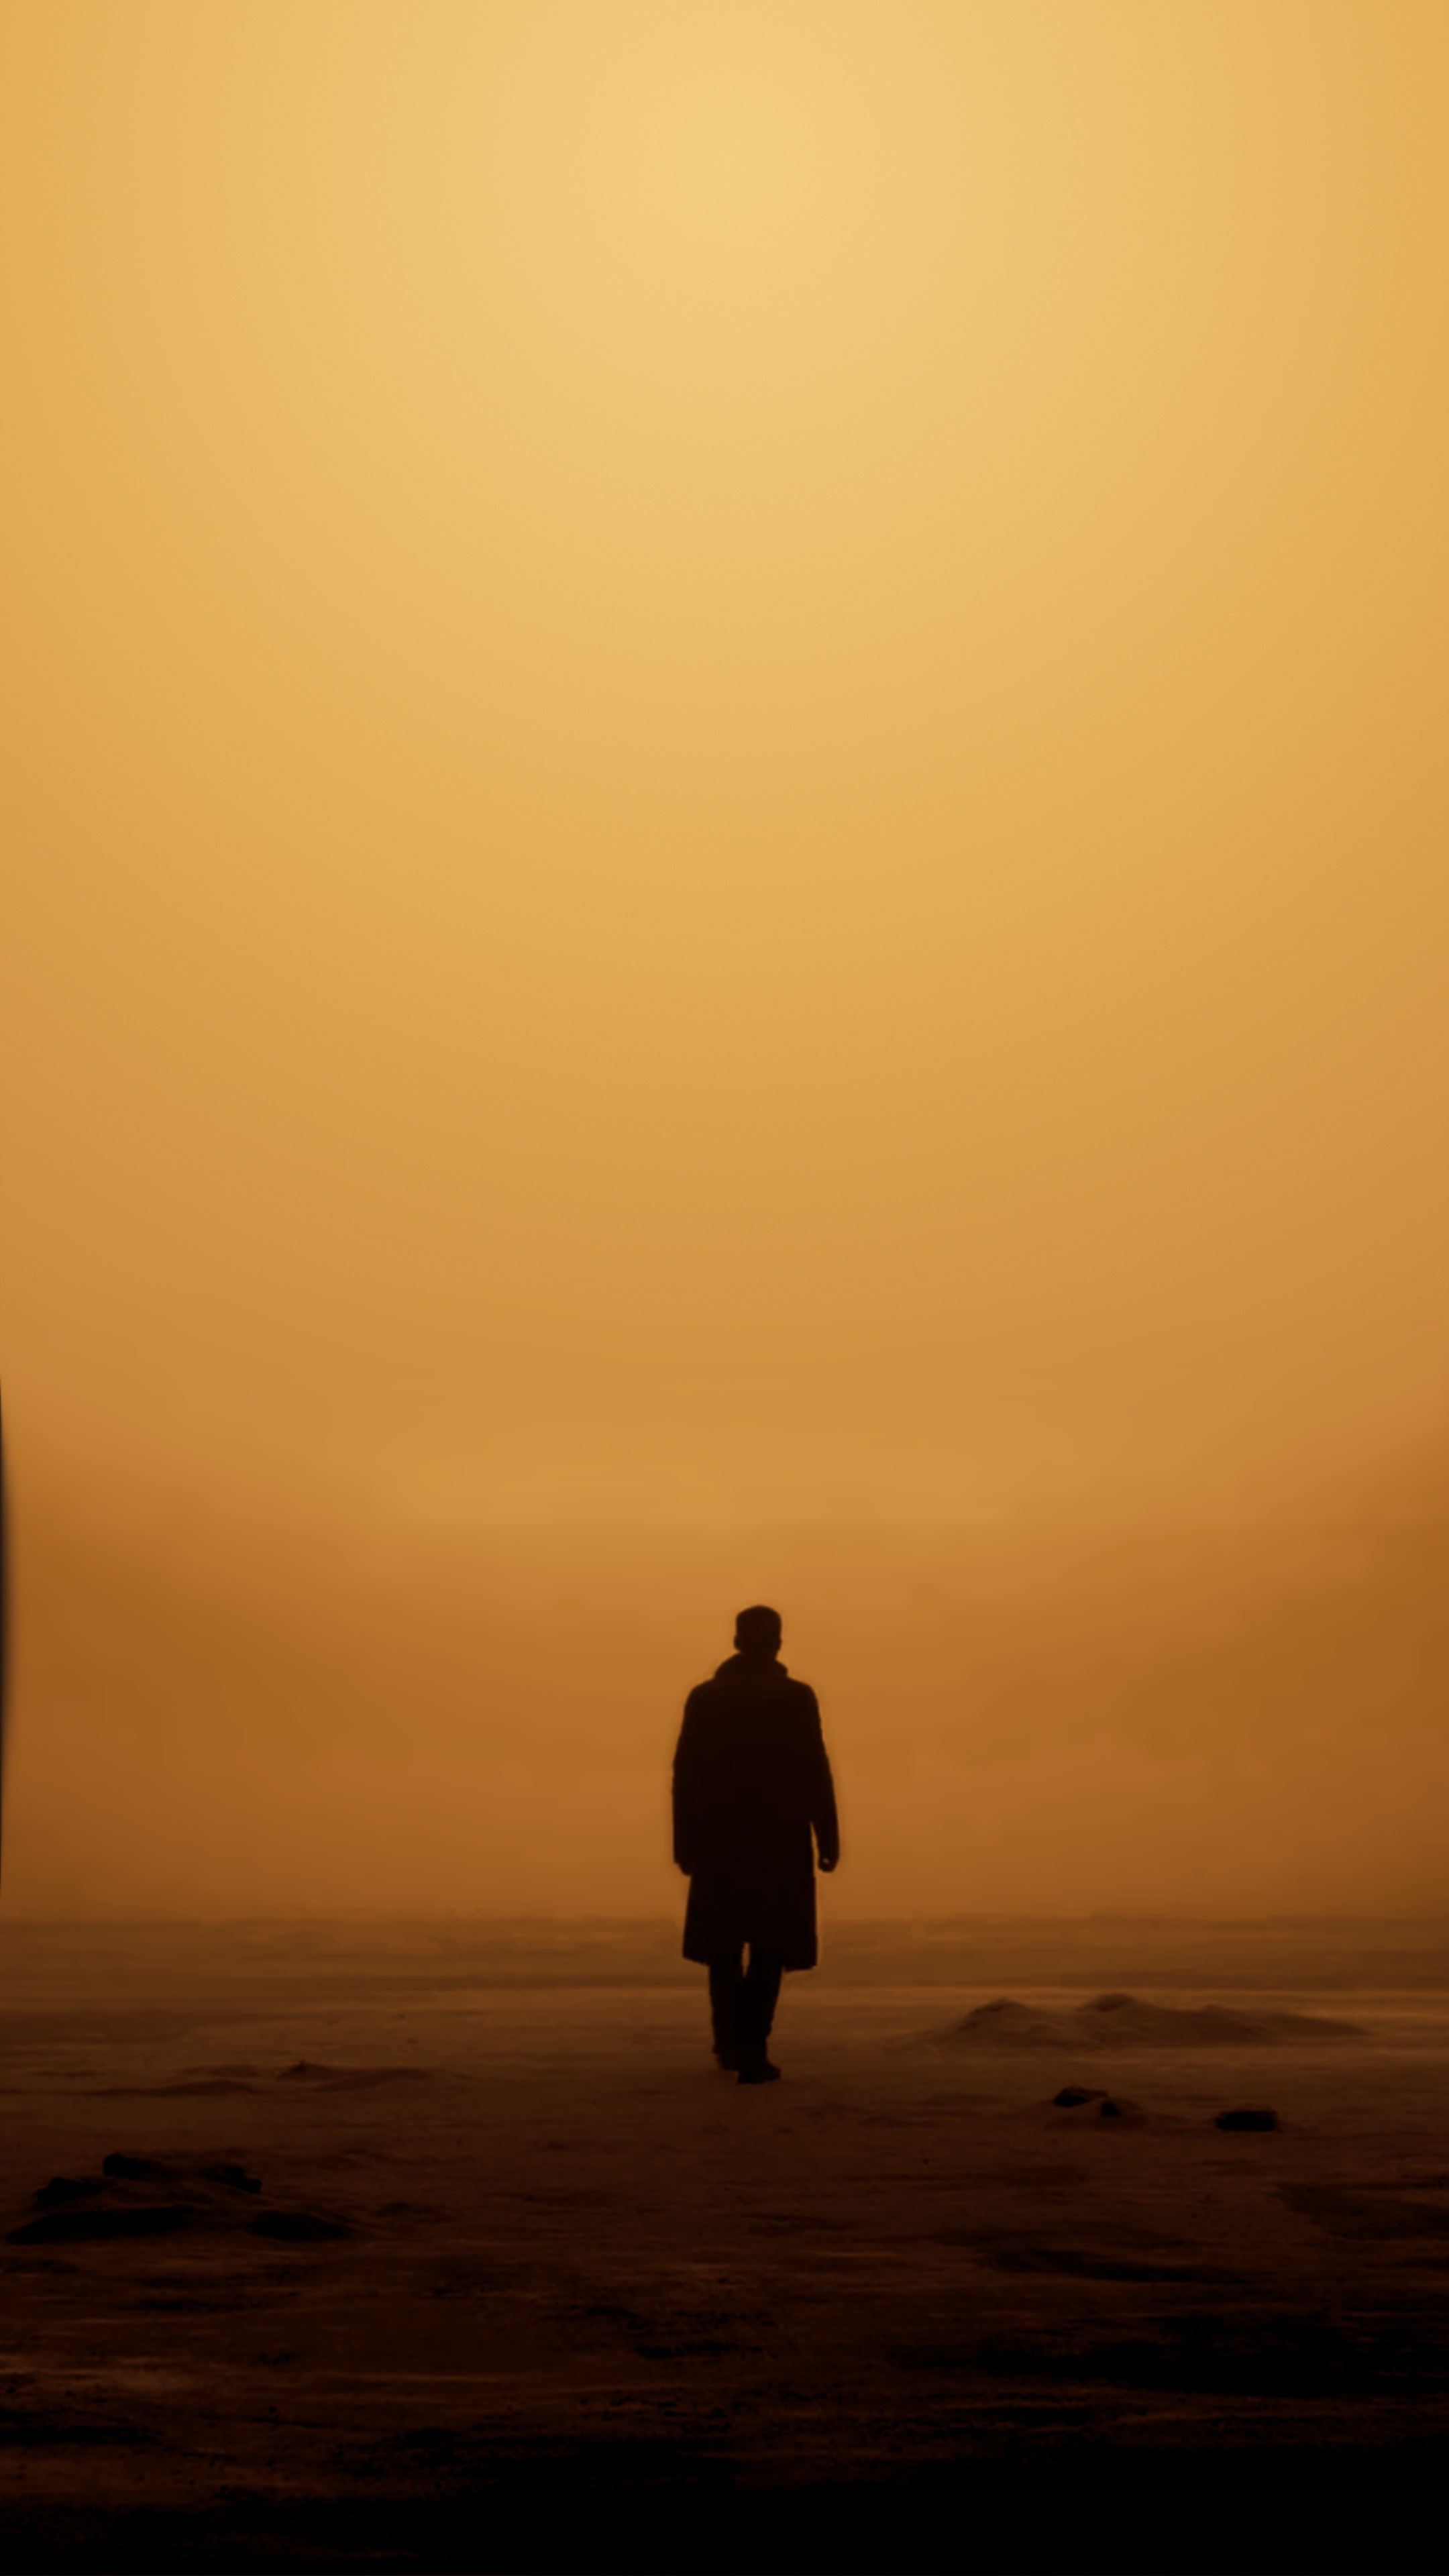 Blade Runner 2049 Wallpapers For Your Iphone And Ipad